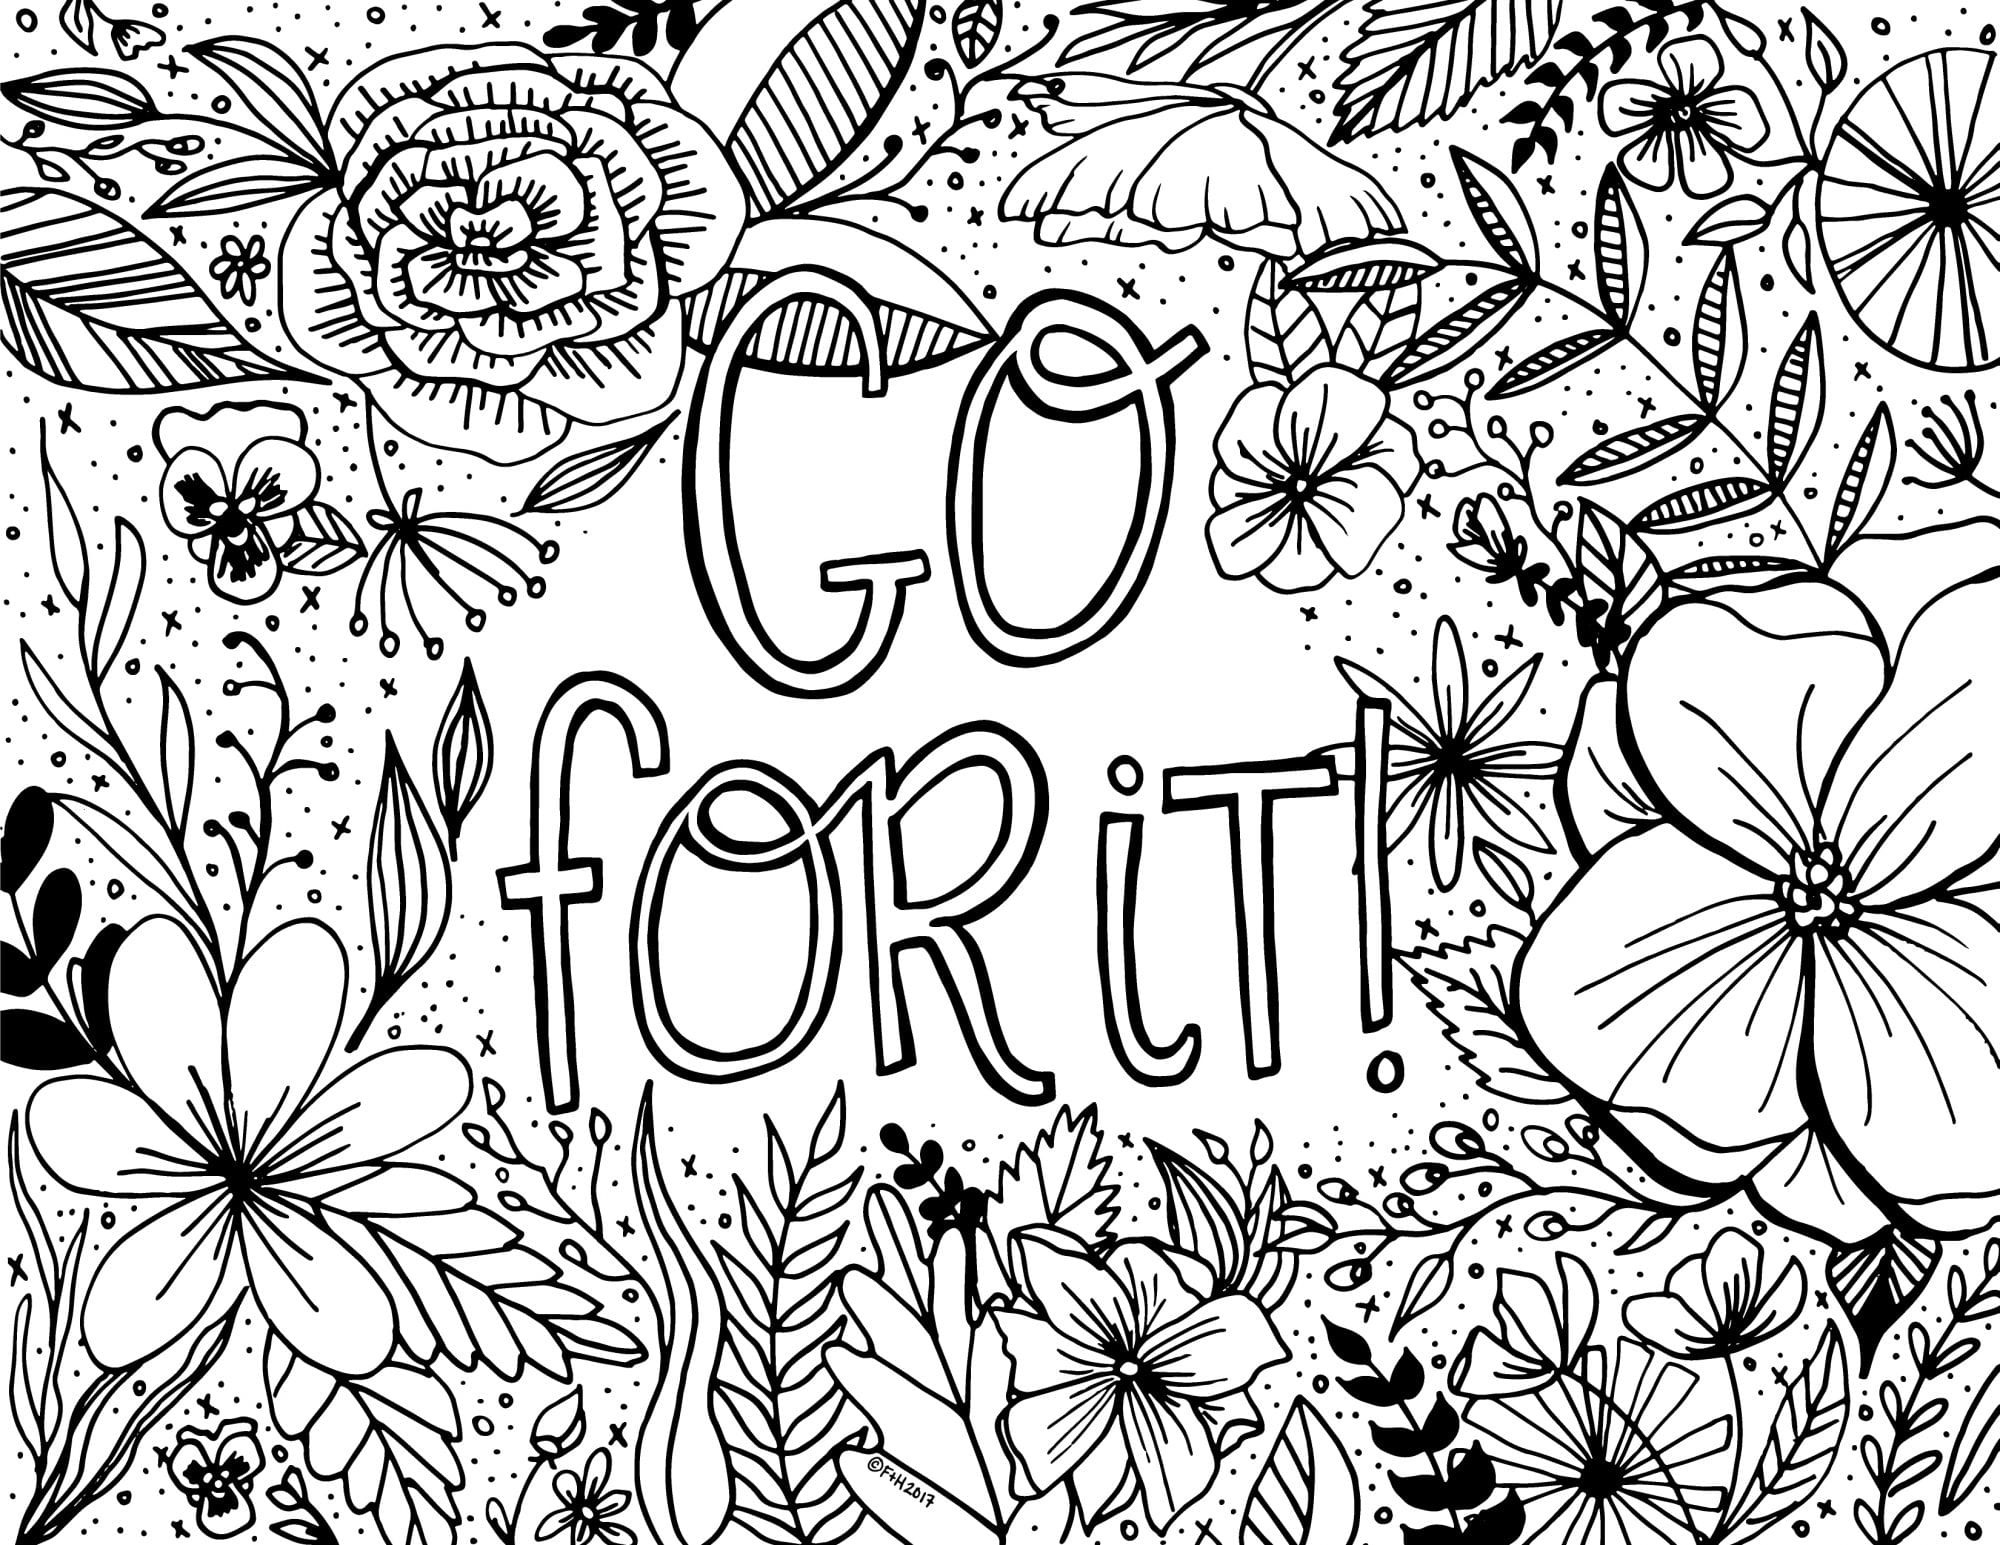 Best ideas about Design Coloring Pages For Girls . Save or Pin Free Encouragement Coloring Page Printable Now.